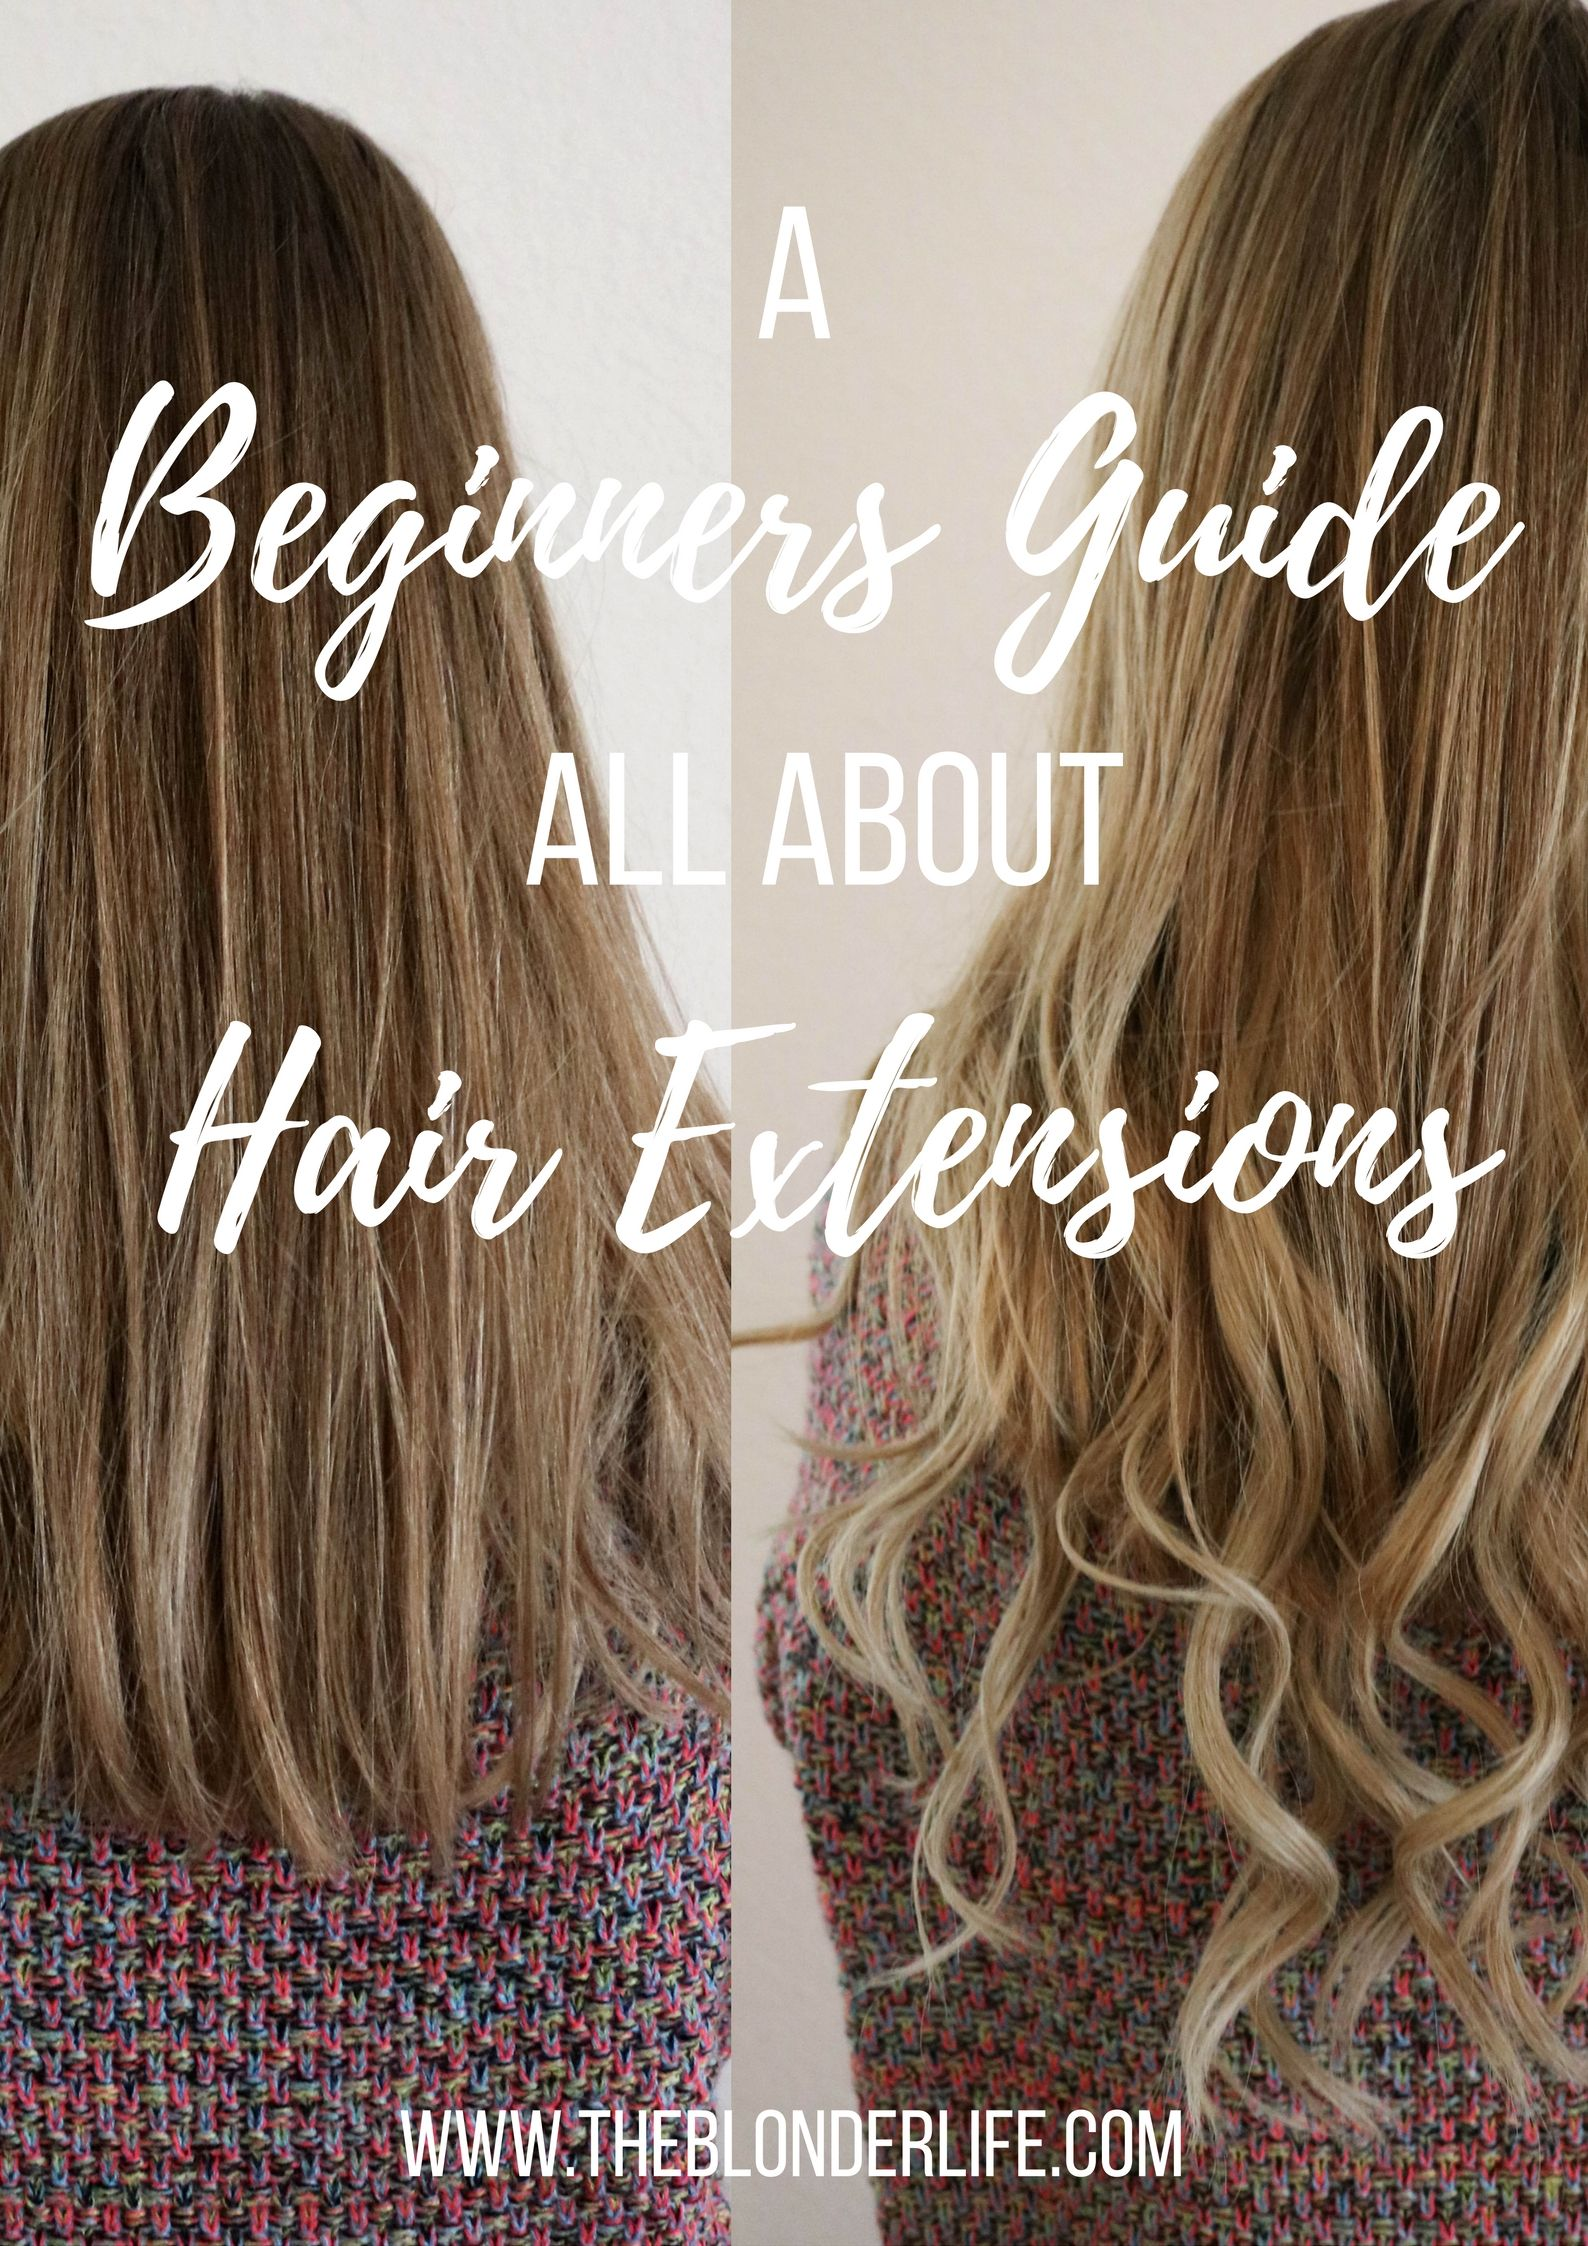 The Beginners Guide To Hair Extensions Hair Extensions Blond And